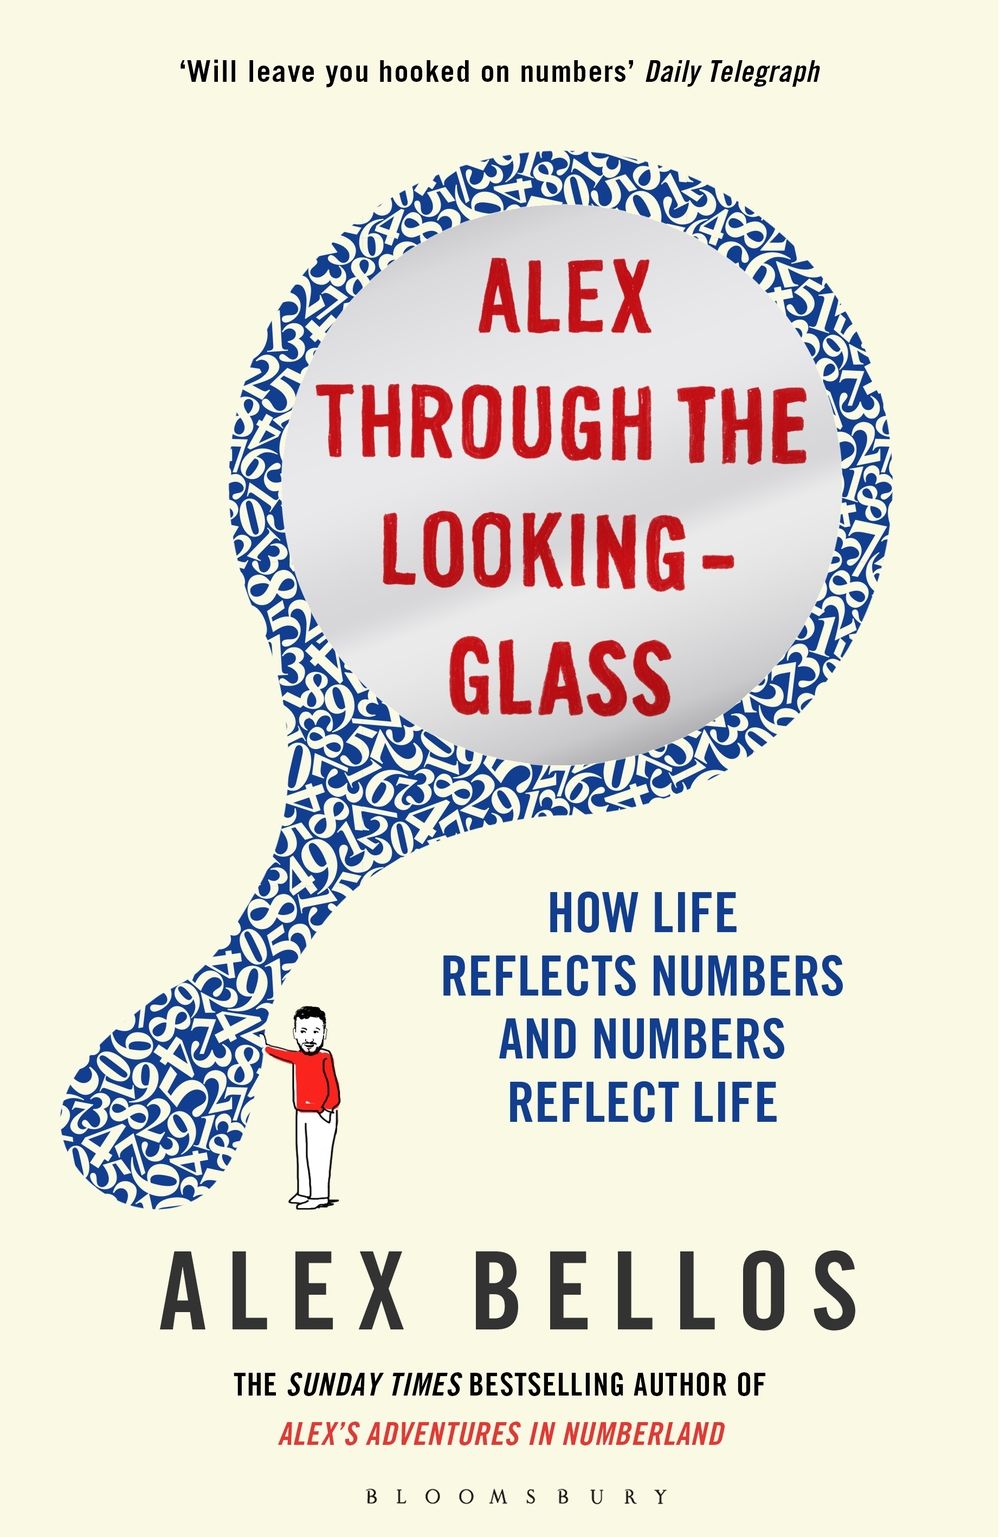 alex bellos book jacket.jpg